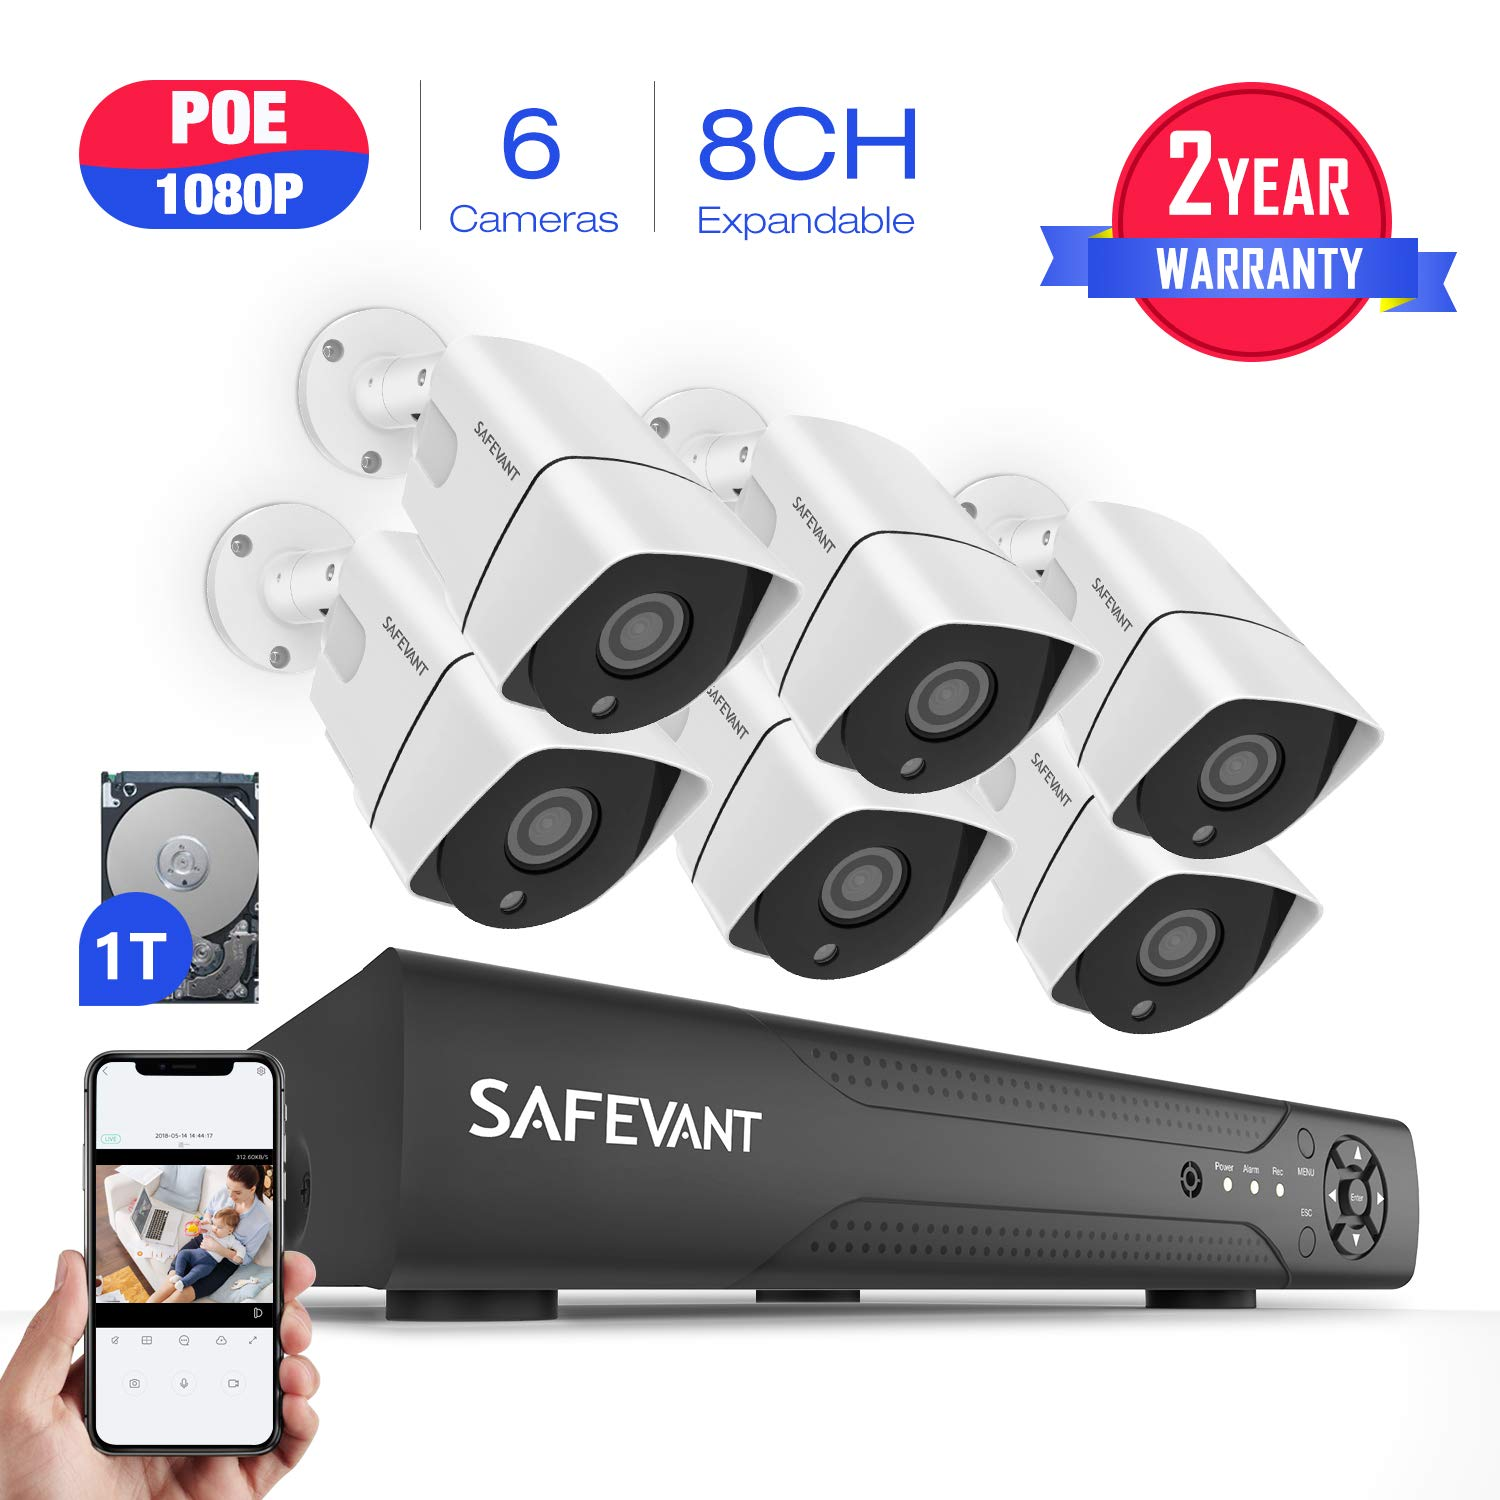 2019 New Security Camera System 1080P,SAFEVANT 1080P PoE Home Security Camera System with 6 x Bullet Wired Outdoor 1080P PoE IP Cameras,8 Channel PoE NVR System w 1TB Hard Drive for 7 24 Recording